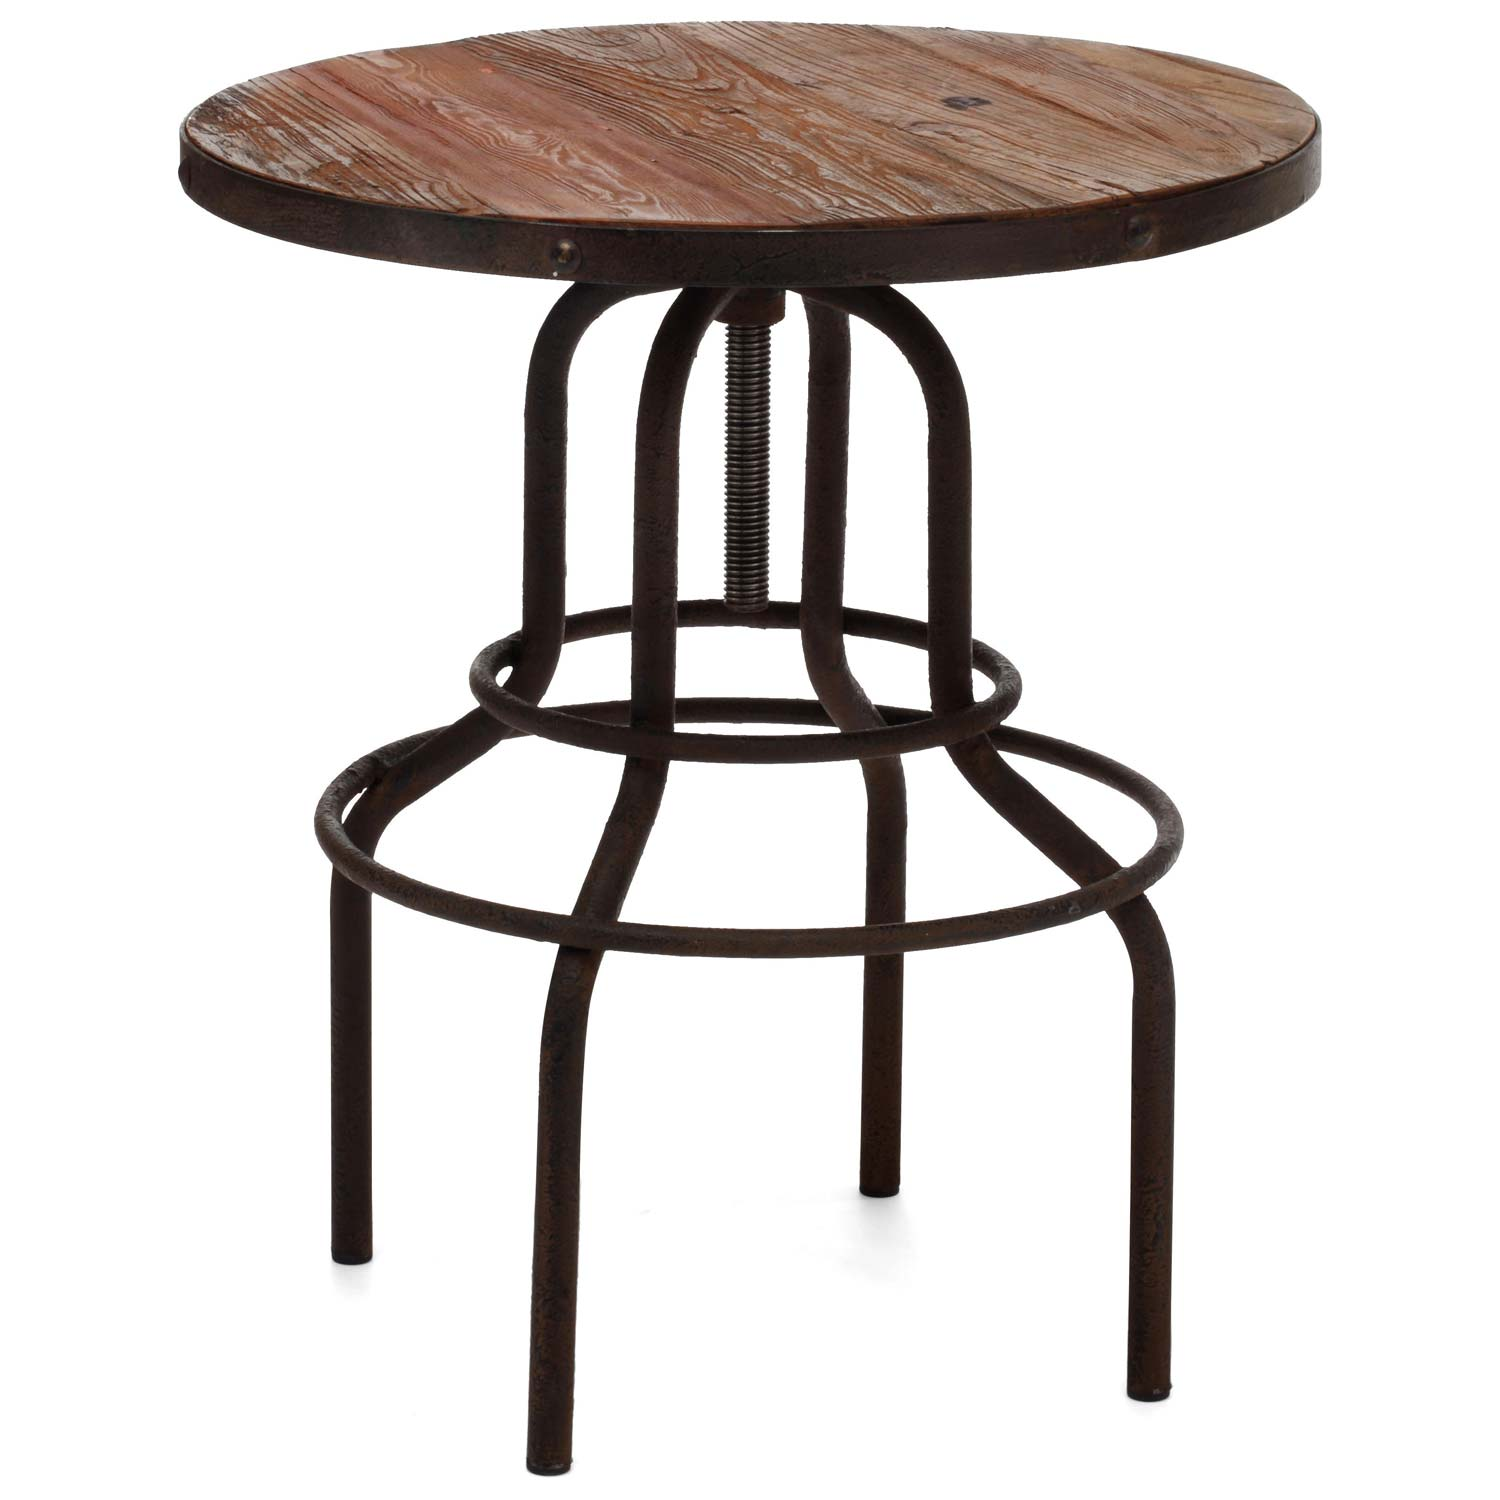 Twin Peaks Round Bistro Table - Antique Metal, Distressed Natural - ZM-98180